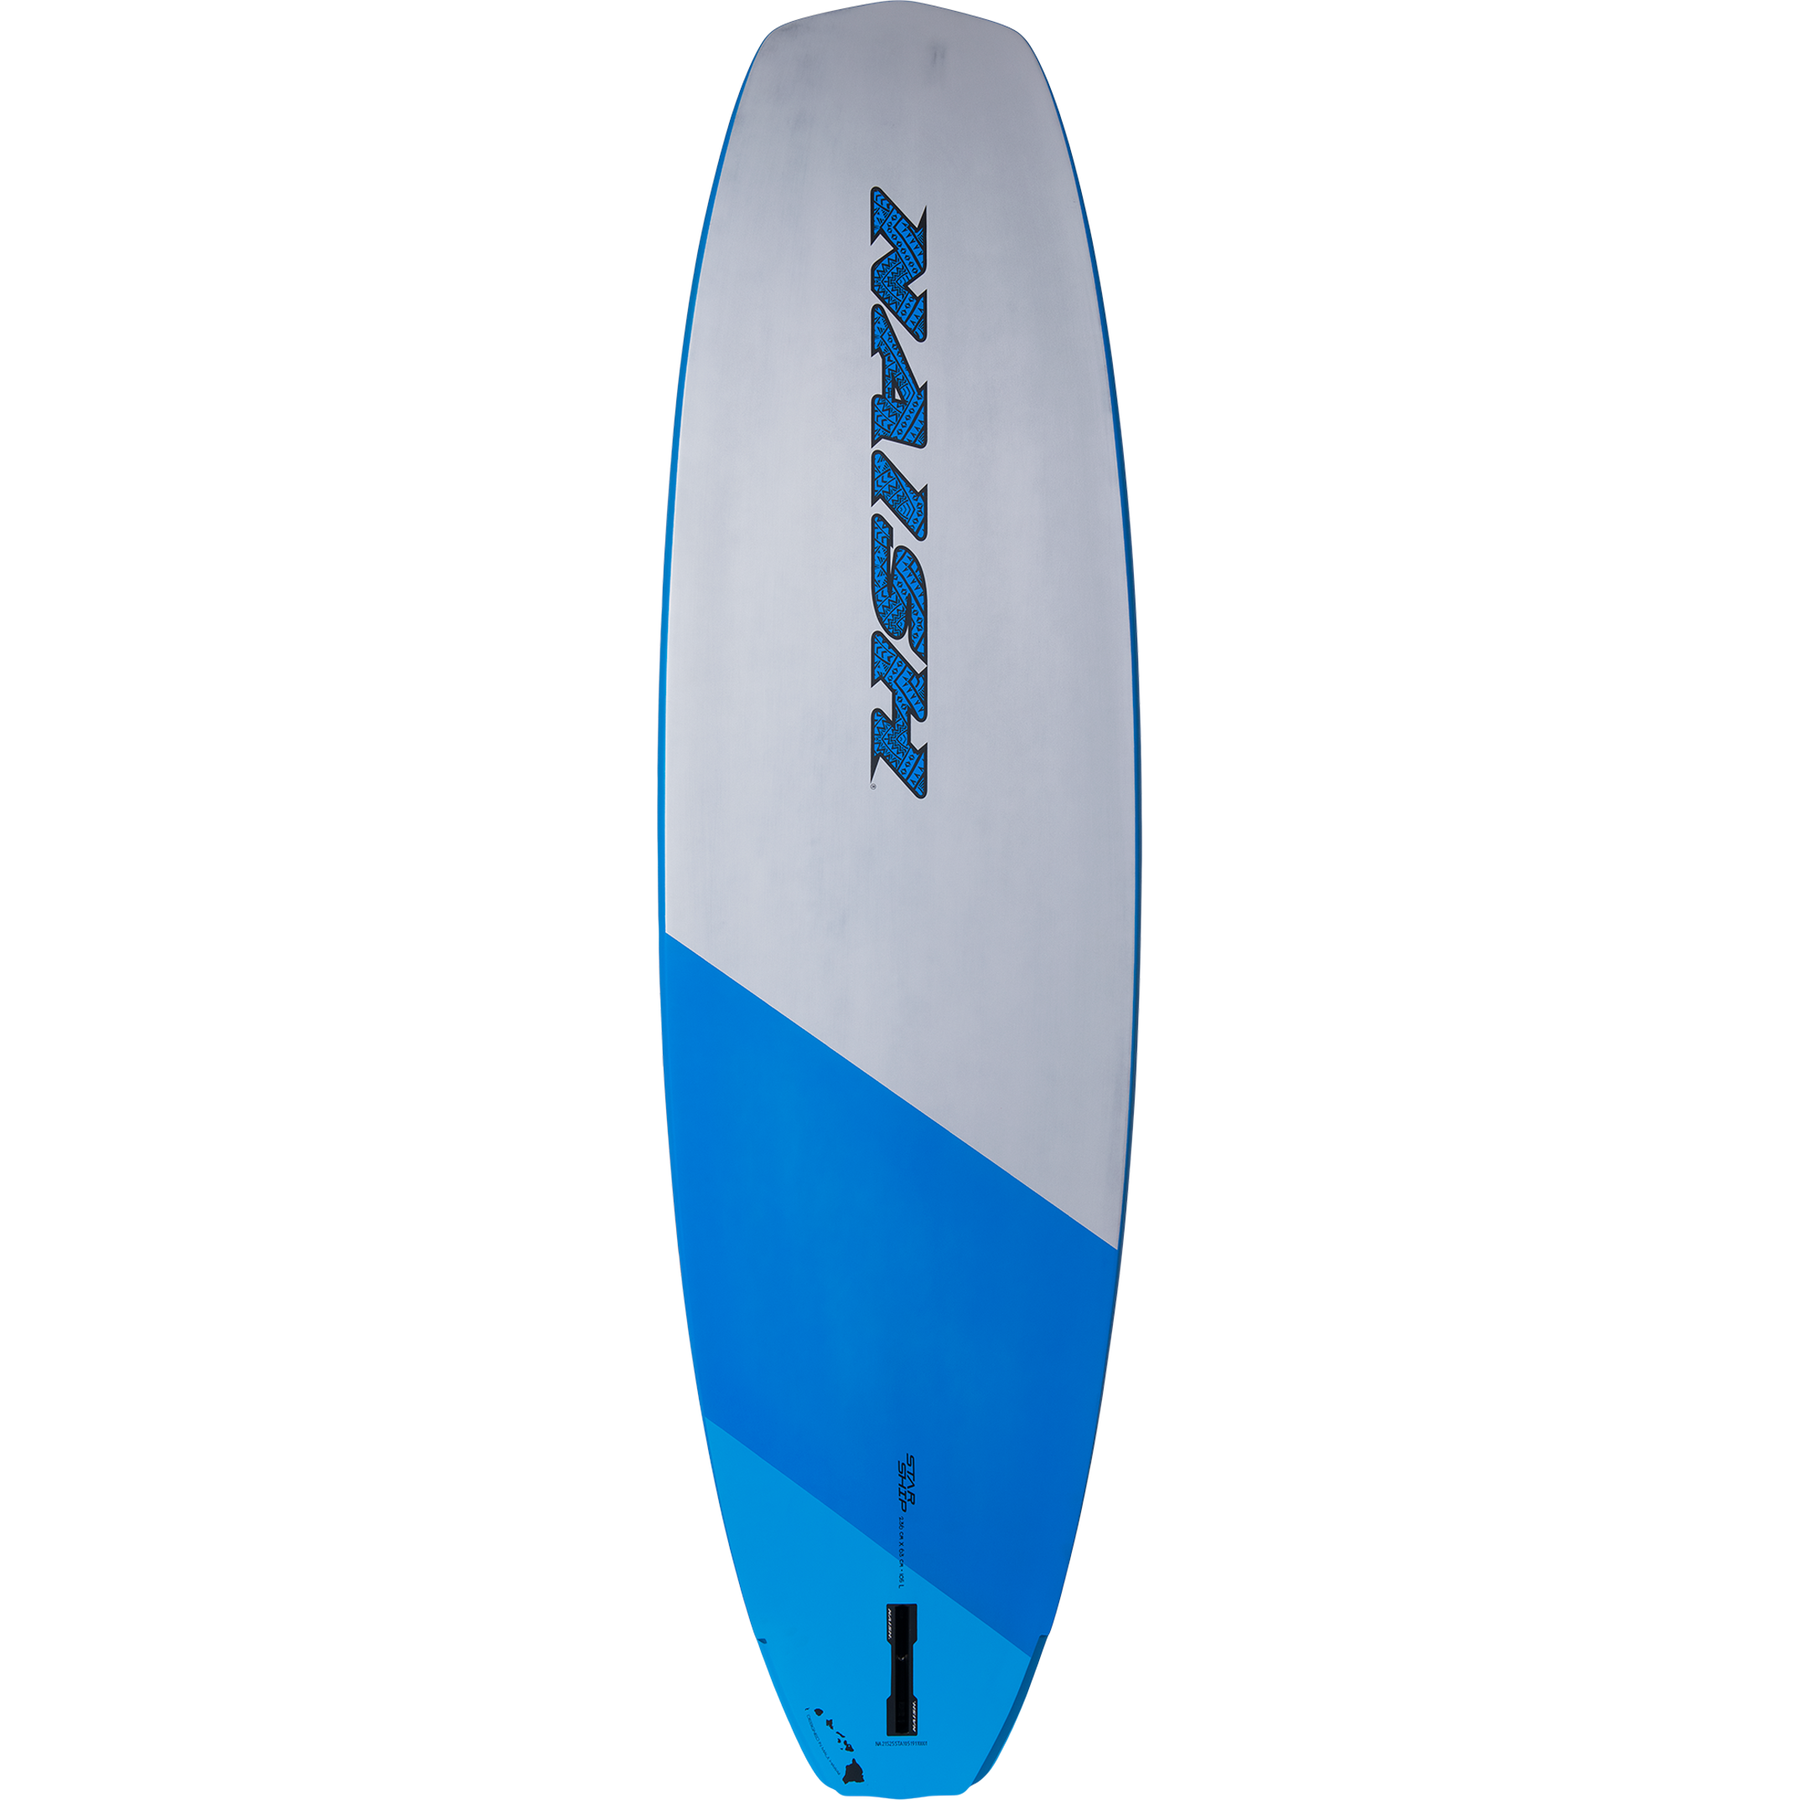 2021 S25 Naish Starship Windsurfing Board